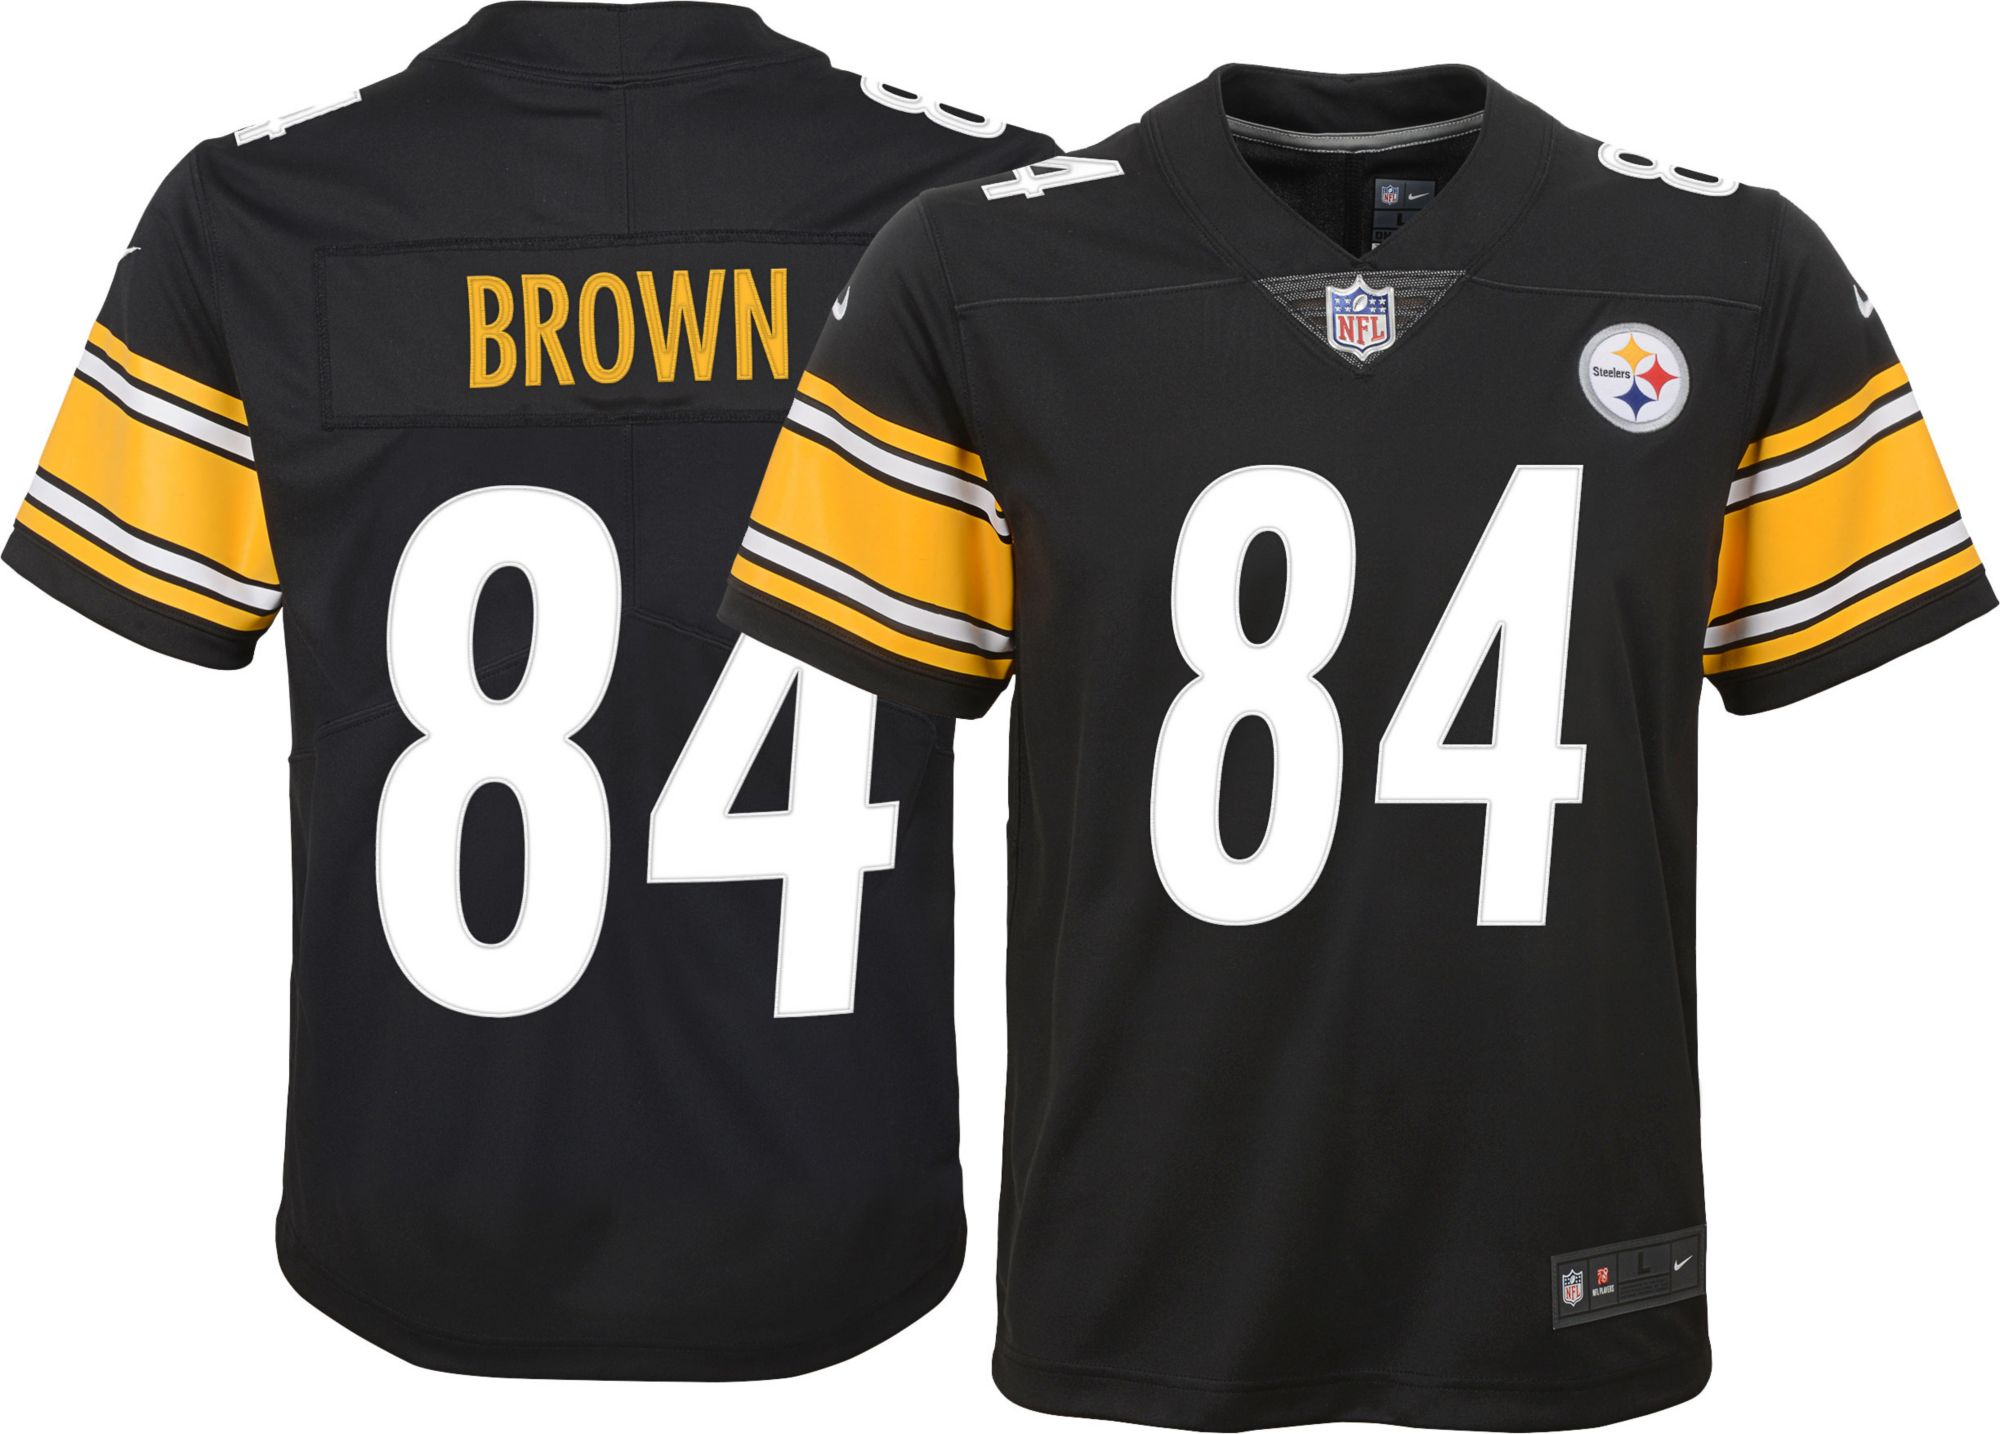 pittsburgh steelers antonio brown youth jersey